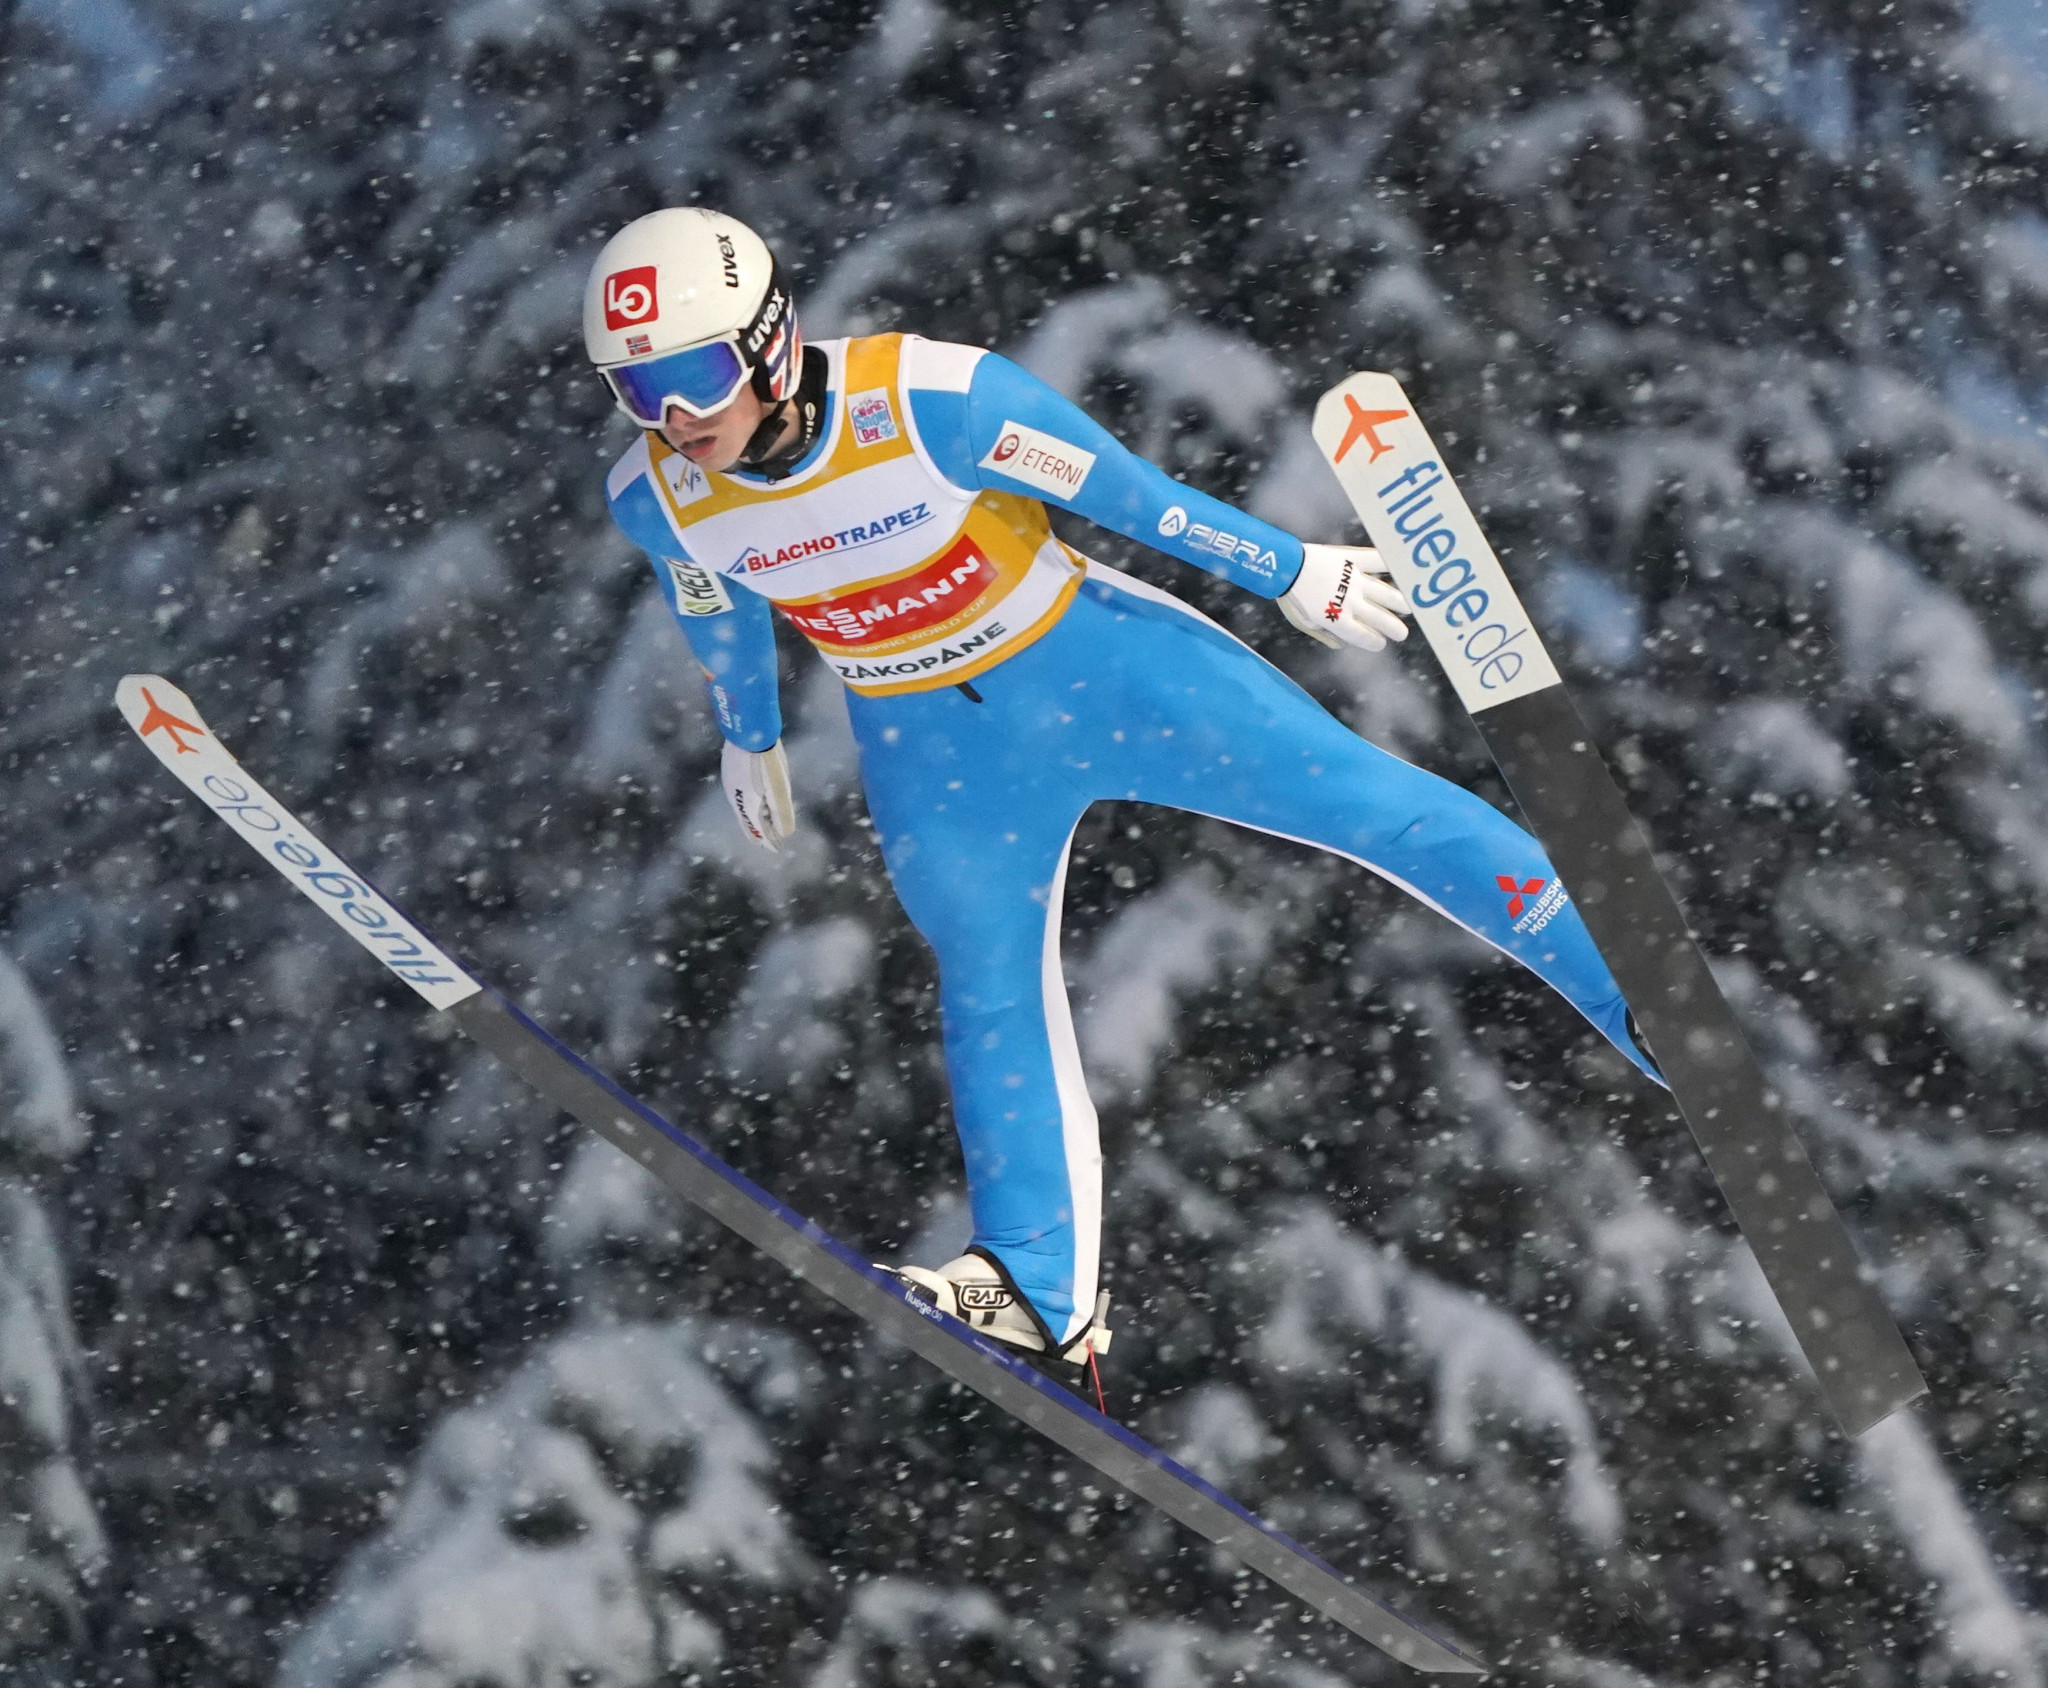 Granerud step closer to overall Ski Jumping World Cup title with Zakopane win